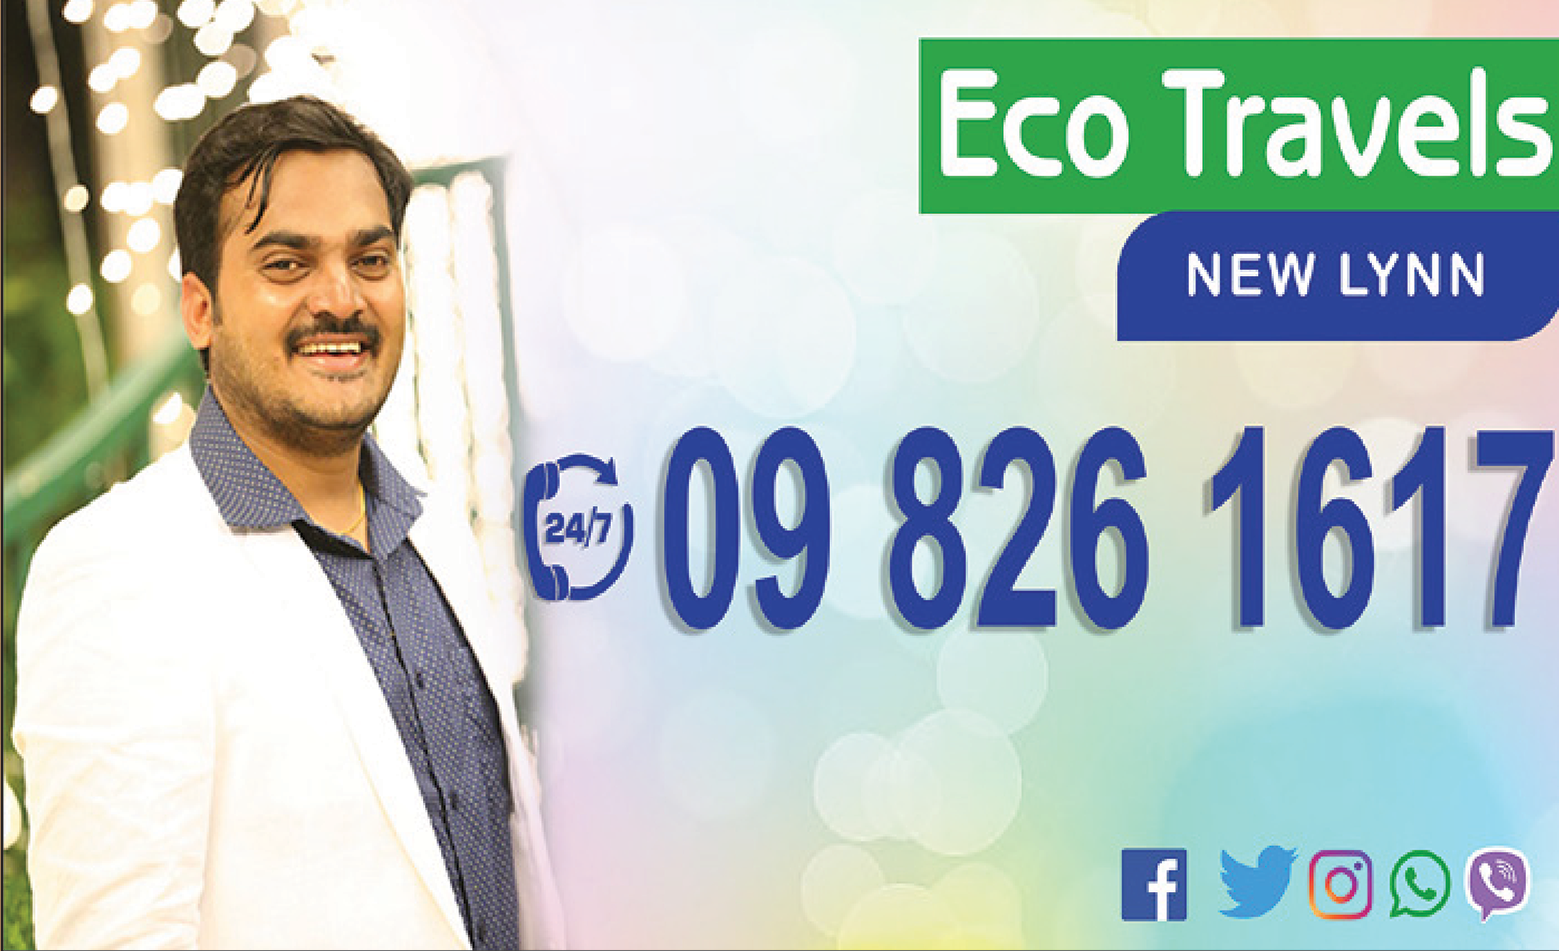 Eco Travels2